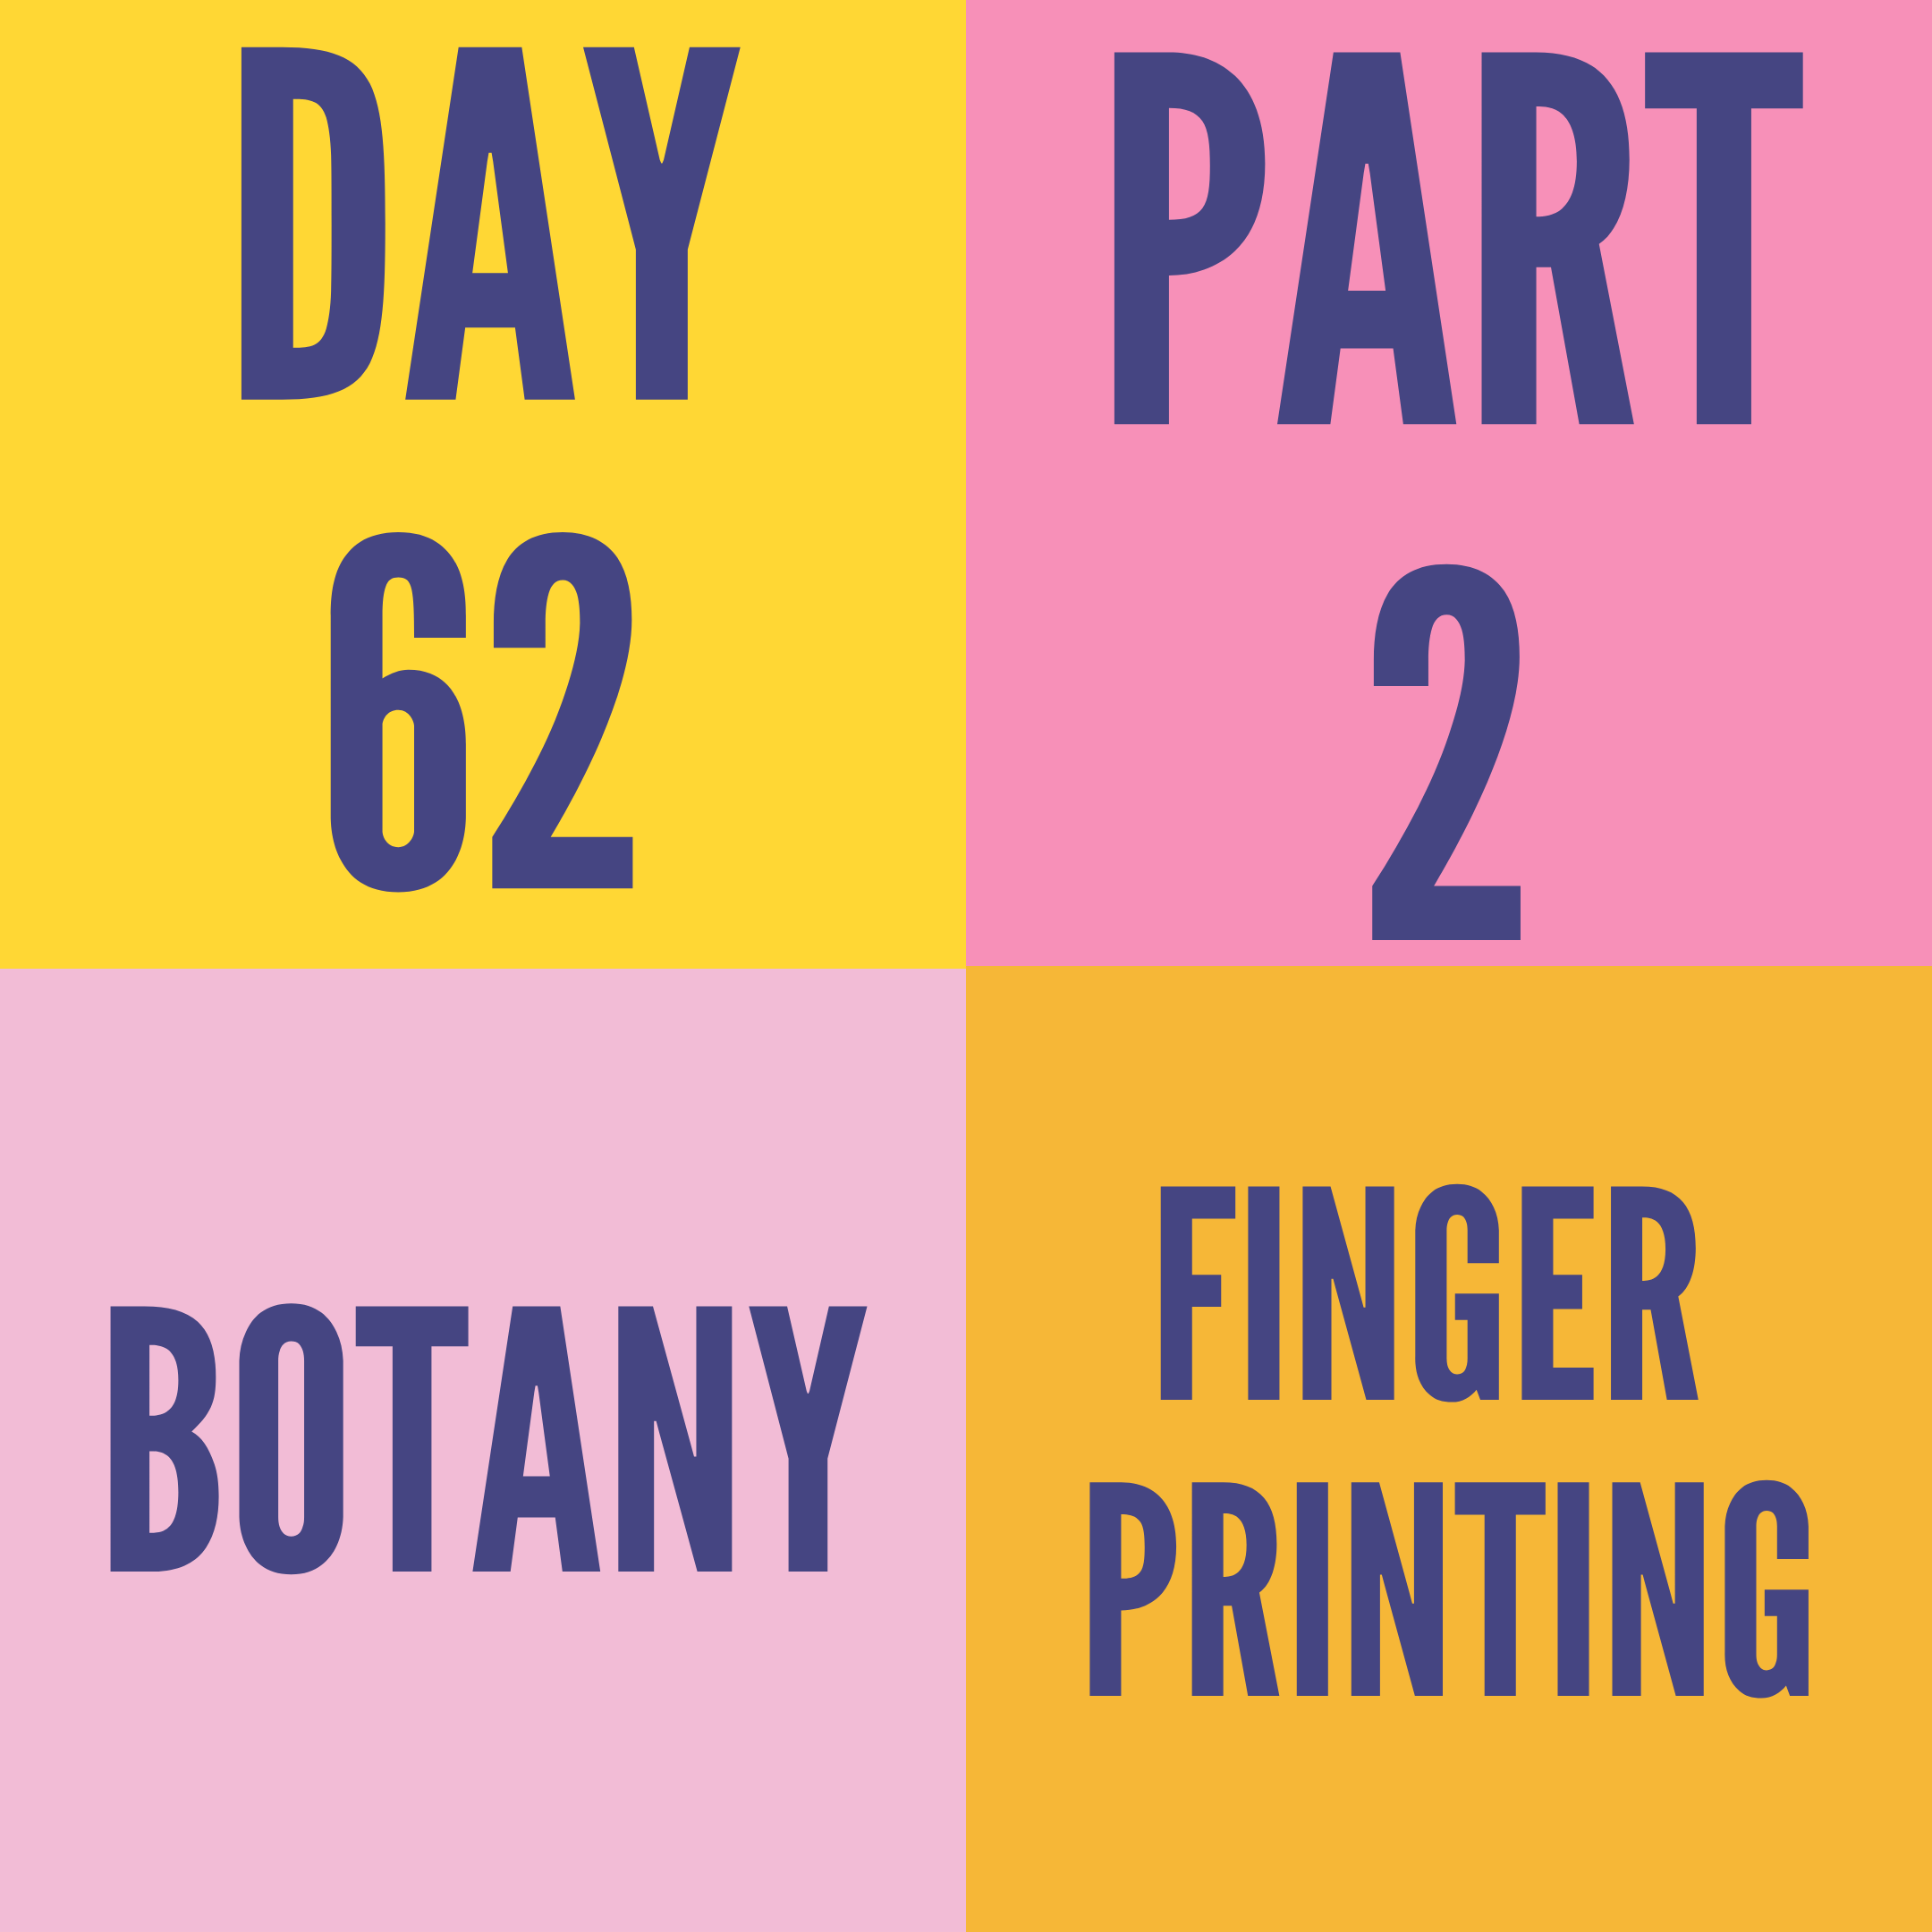 DAY-62 PART-2 FINGER PRINTING